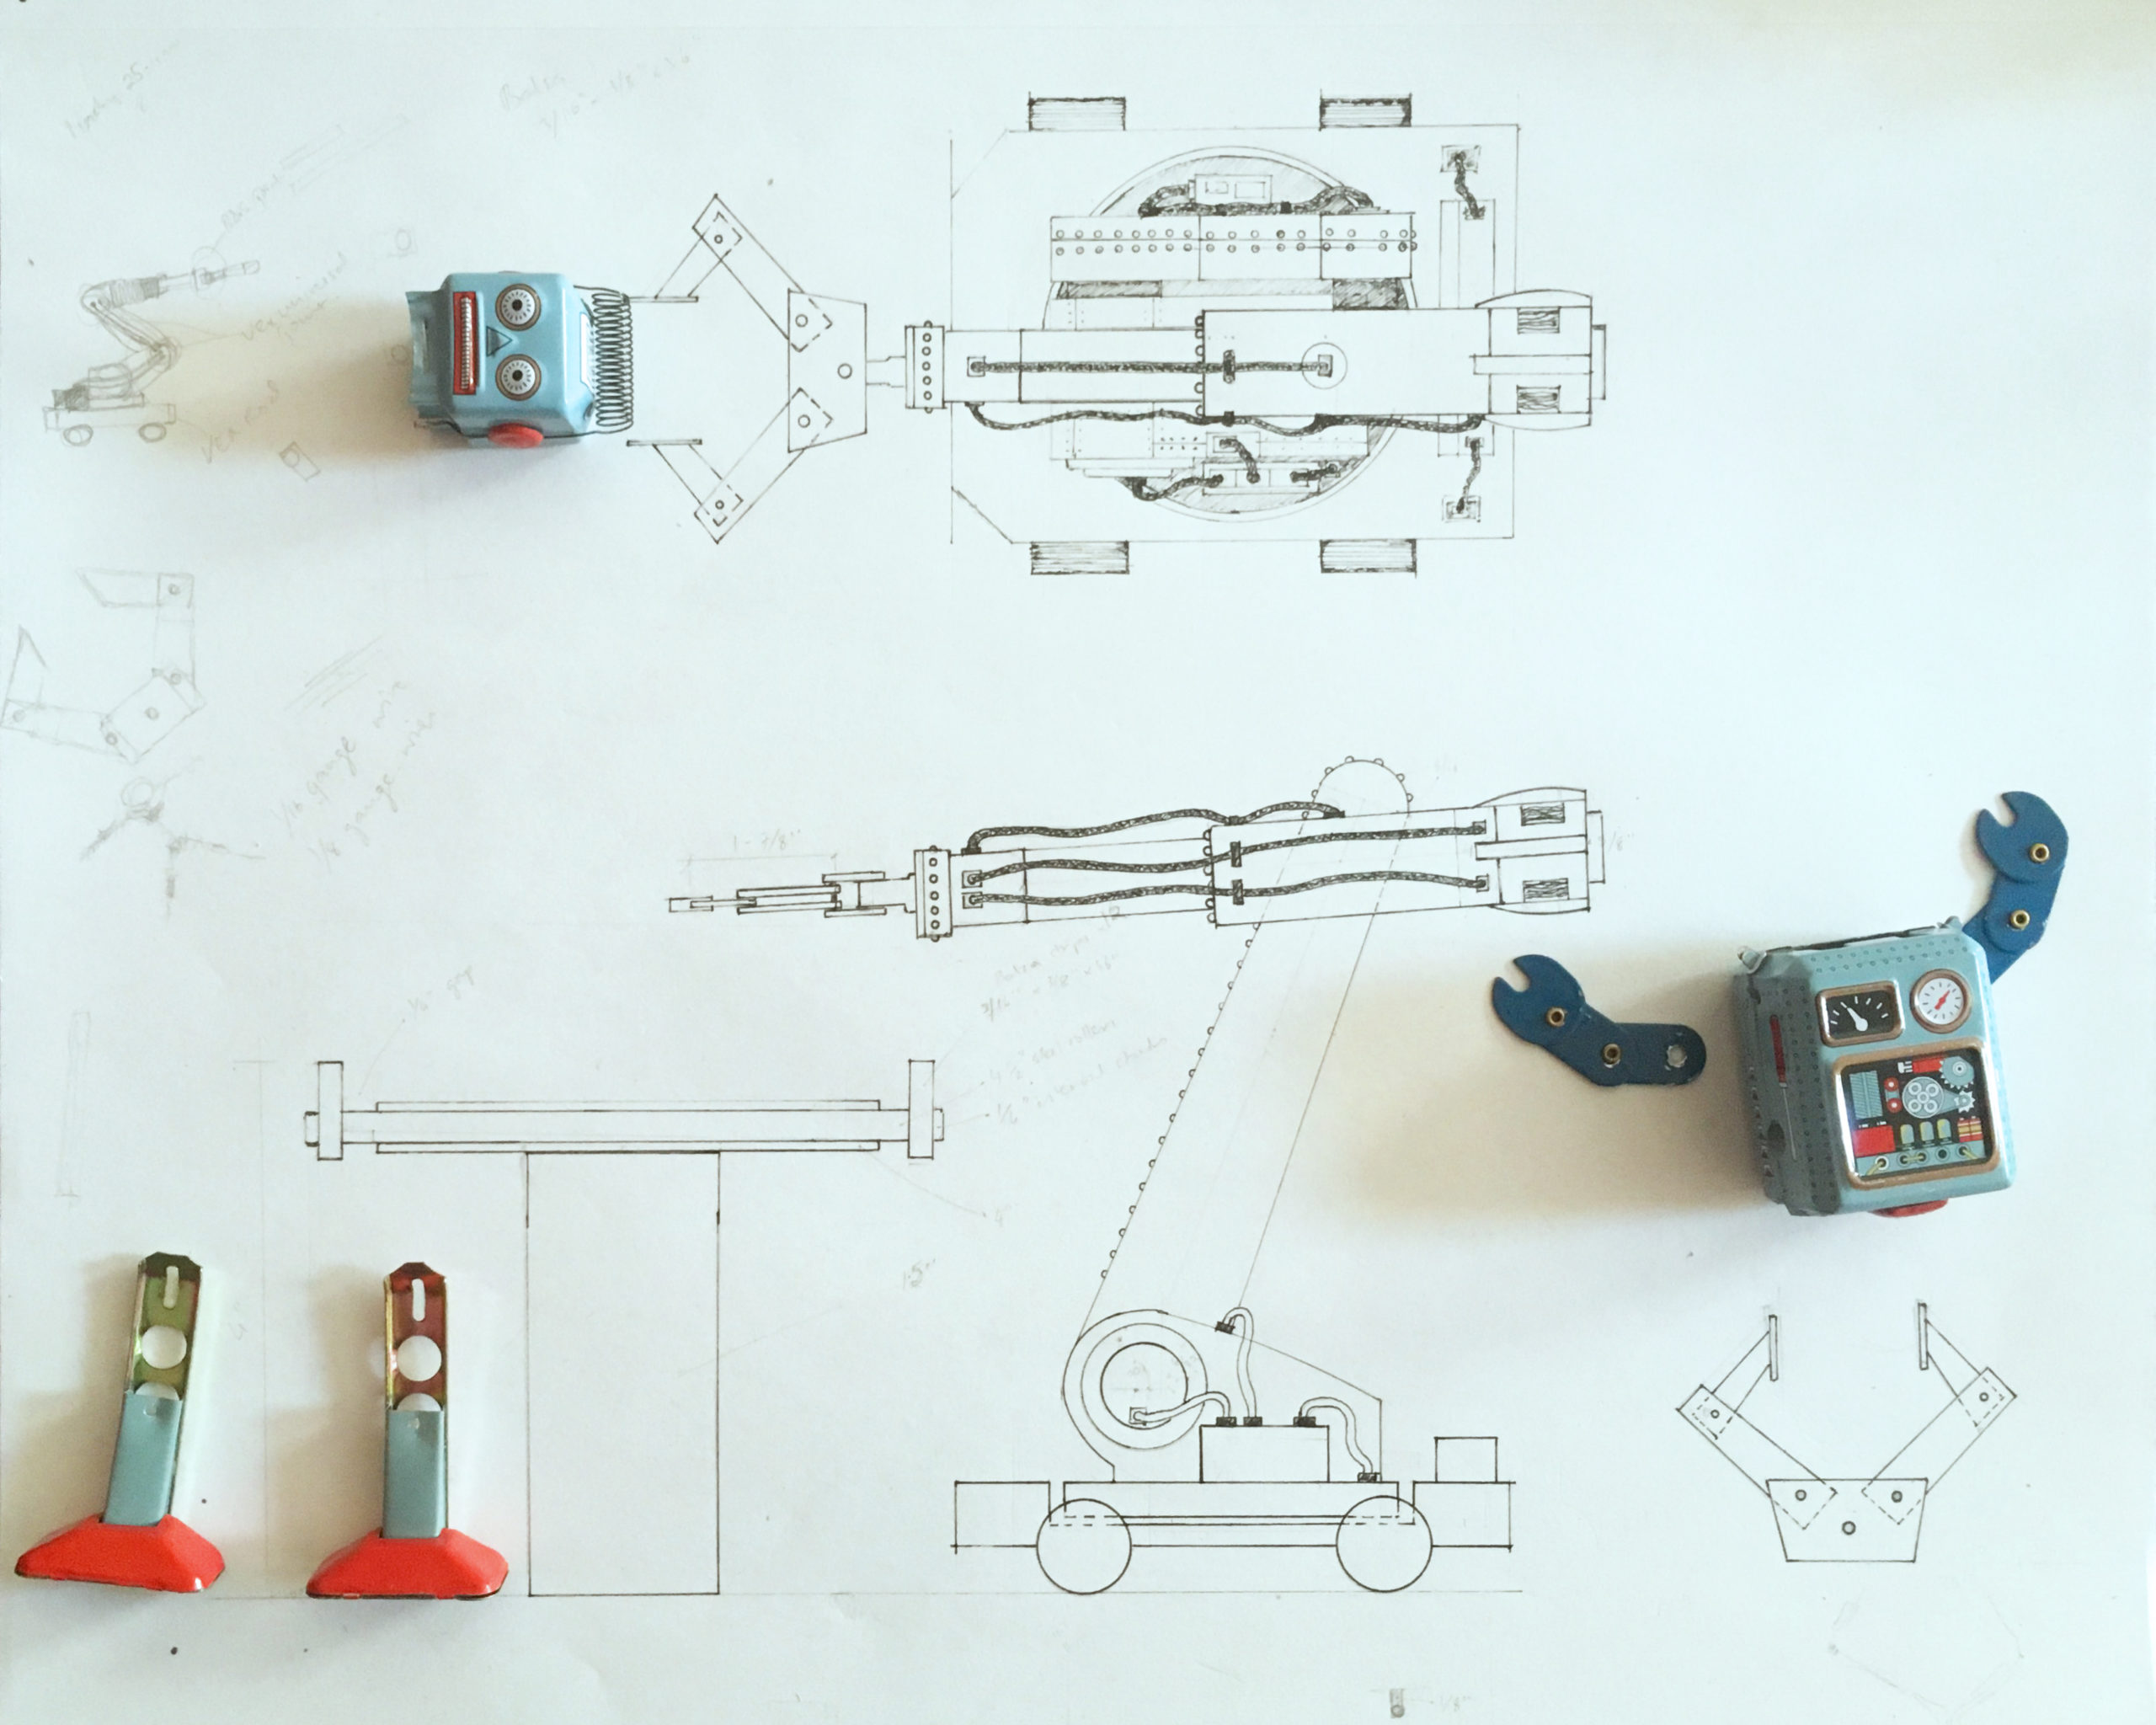 Autobot Schematic, Toy Stories, 2017